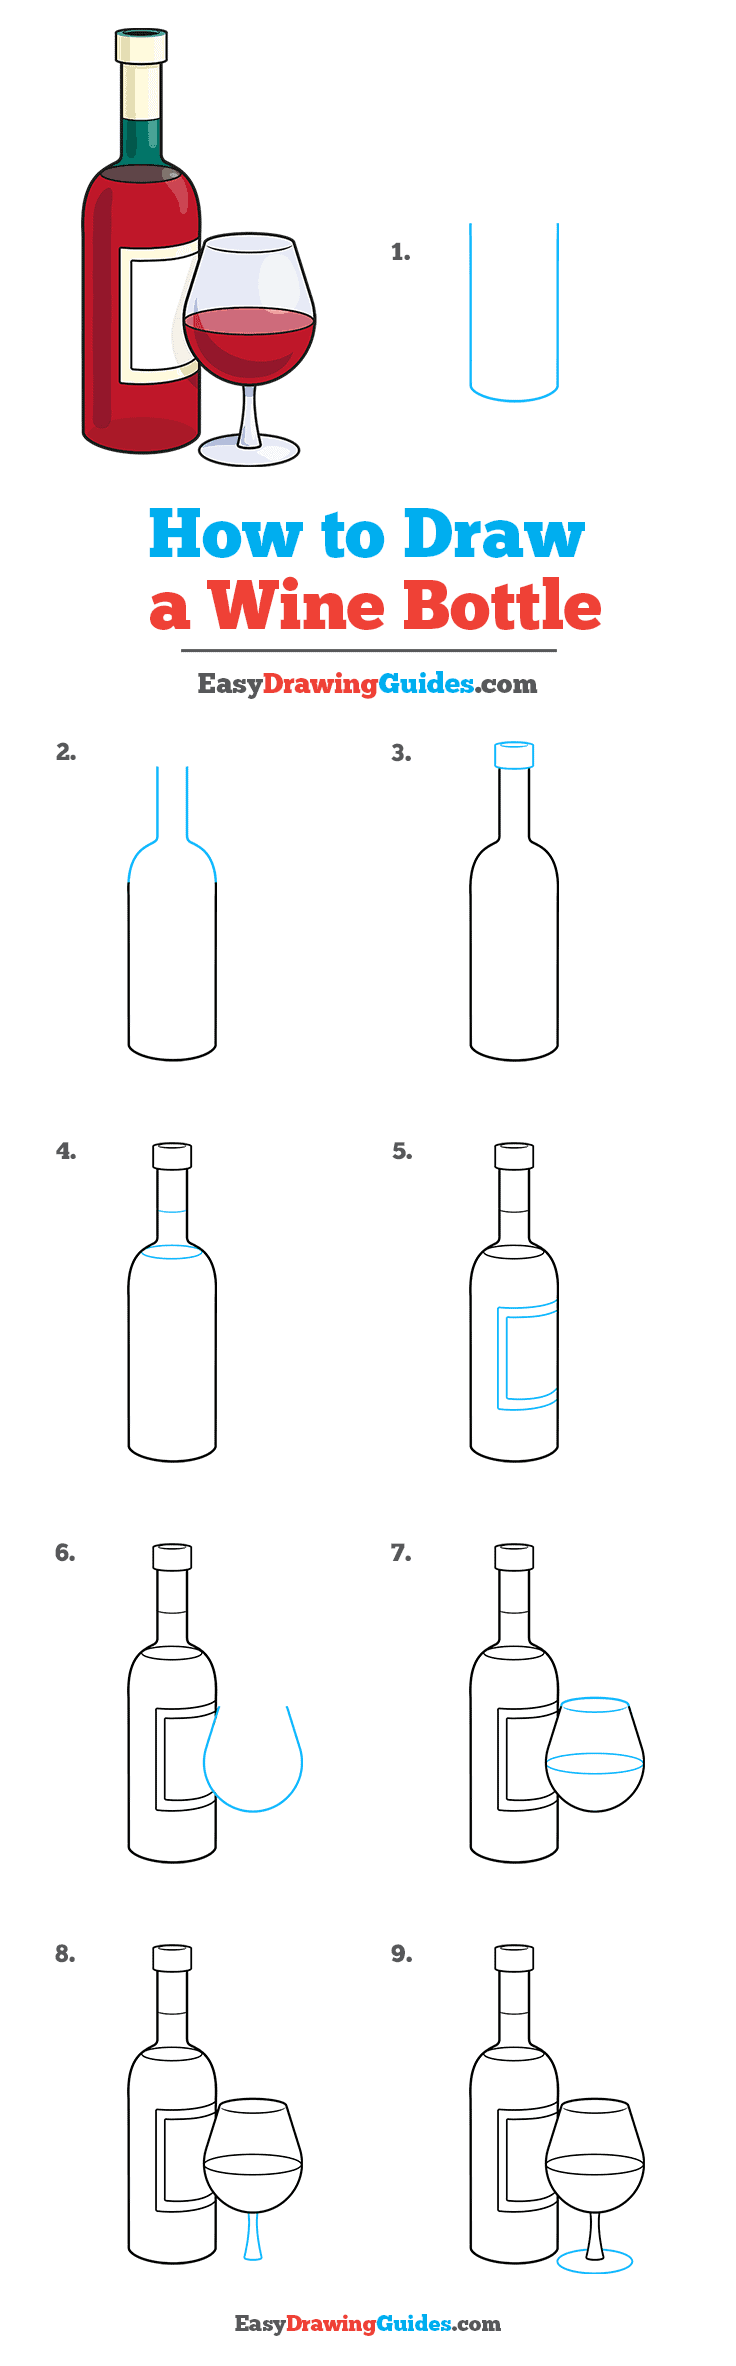 How to Draw a Wine Bottle Step by Step Tutorial Image